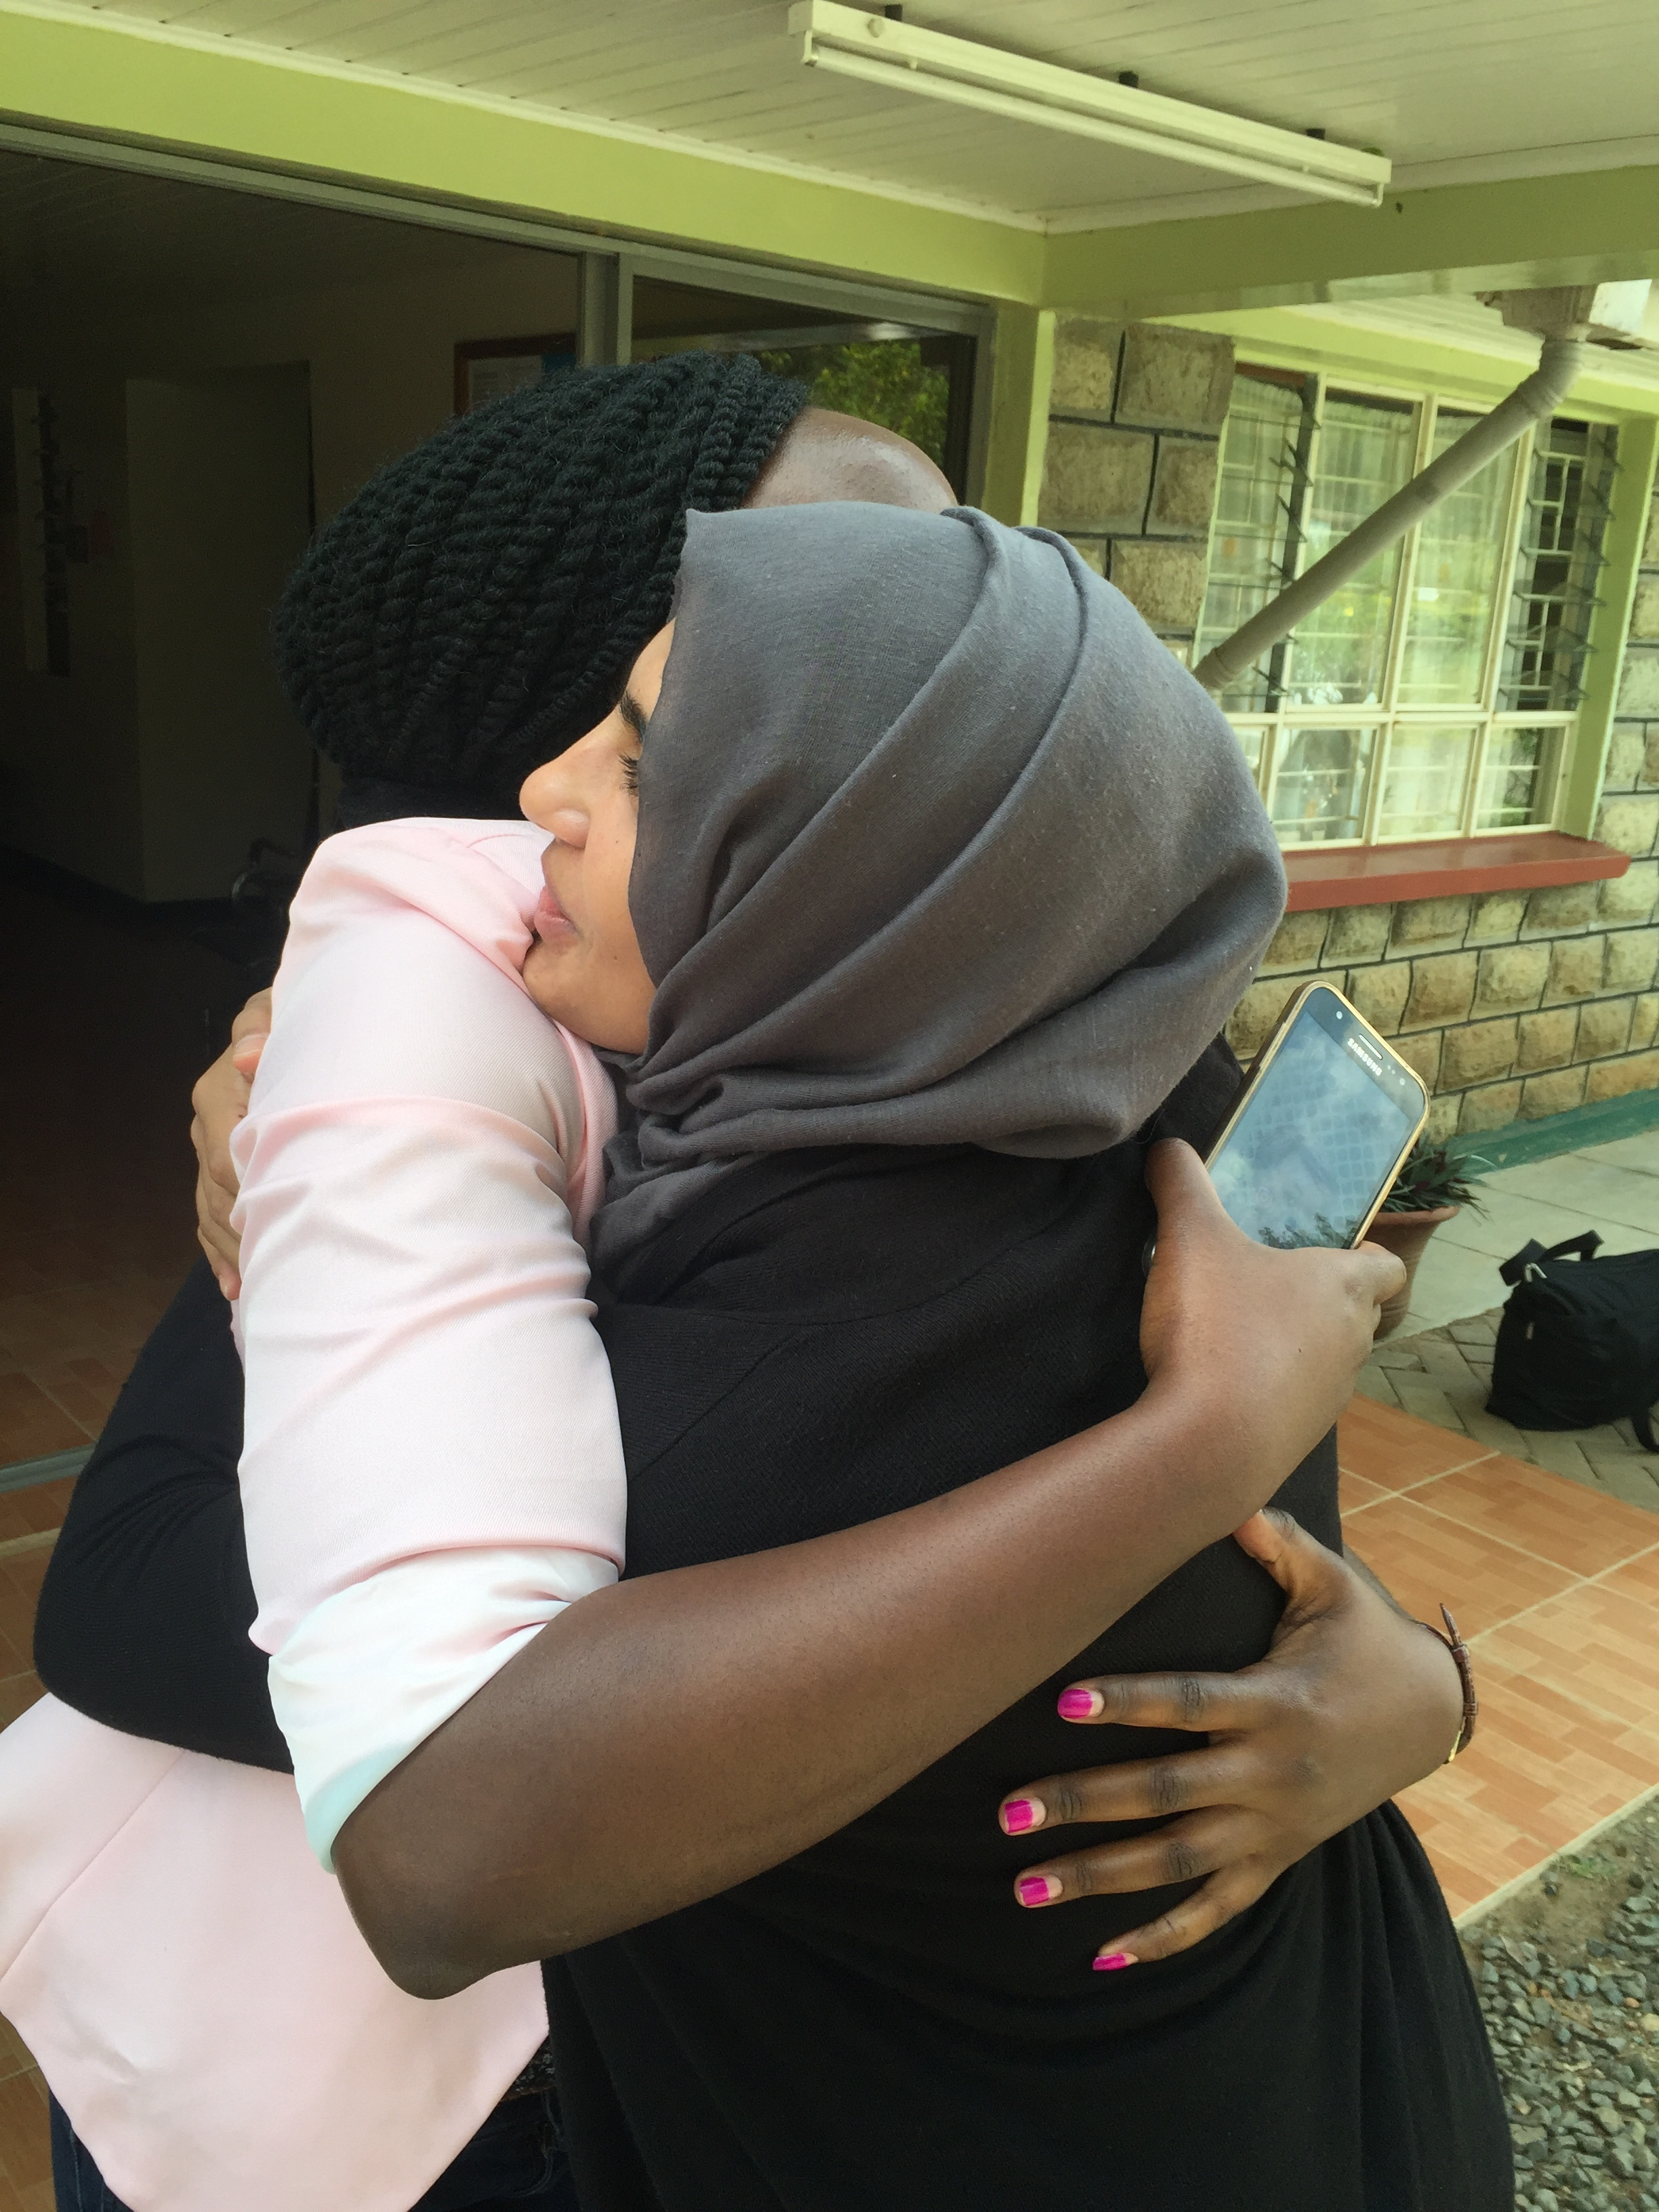 """Jemimah and Dr. Sidiqa saying a sad goodbye. They've worked together very closely over the last 2 years as Jemimah was being trained by Sidiqa to be the """"optometrist"""" at the clinic."""